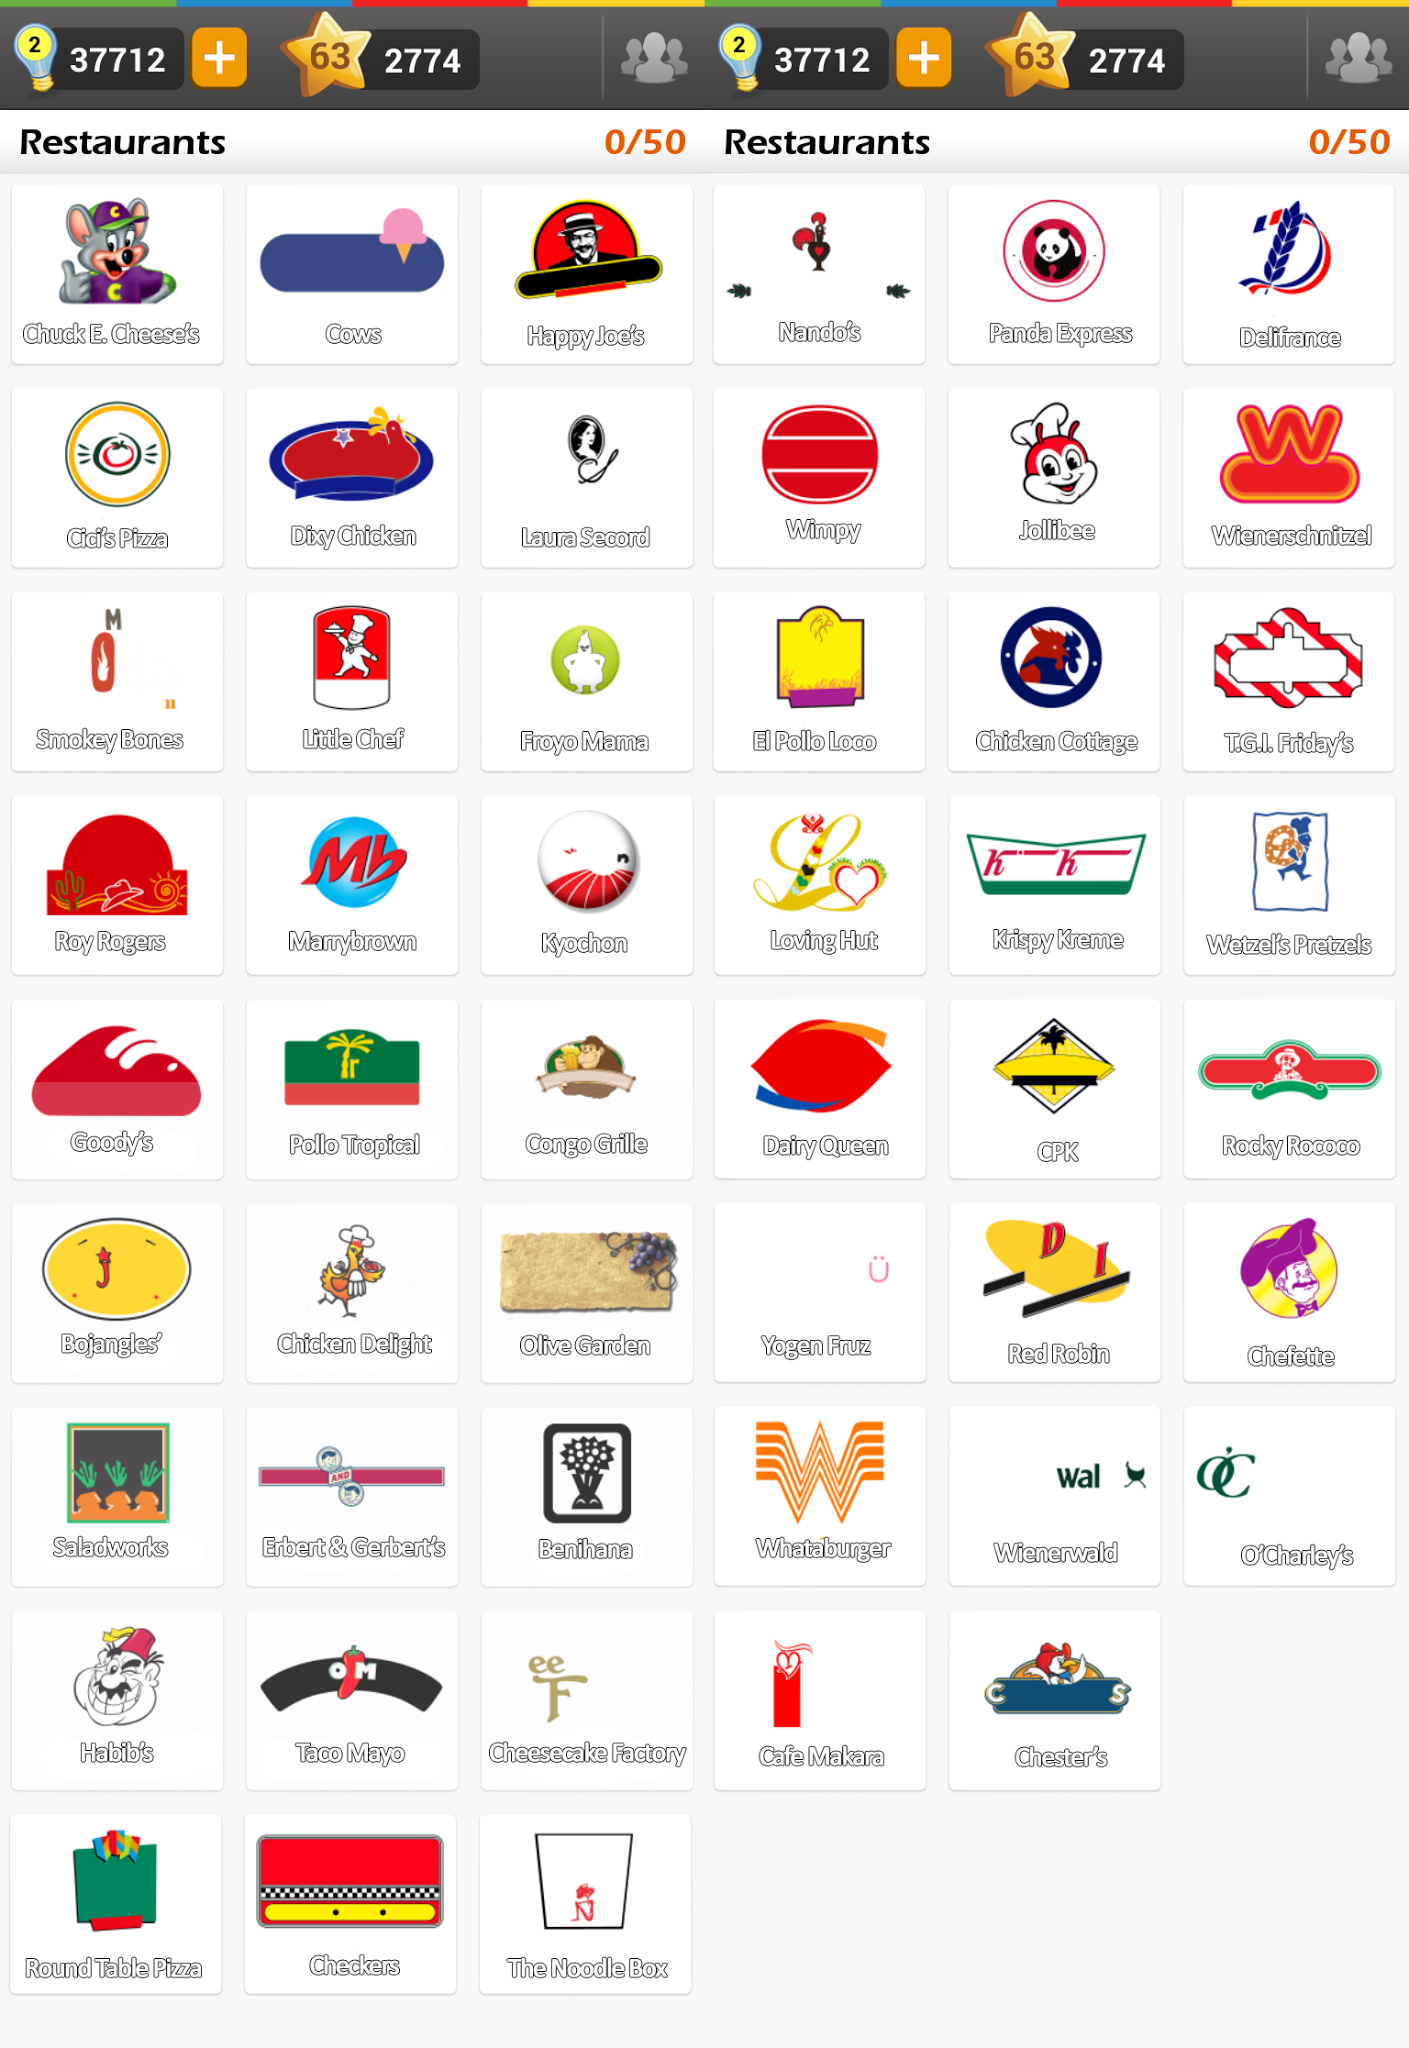 What Restaurant Logo Game Answers